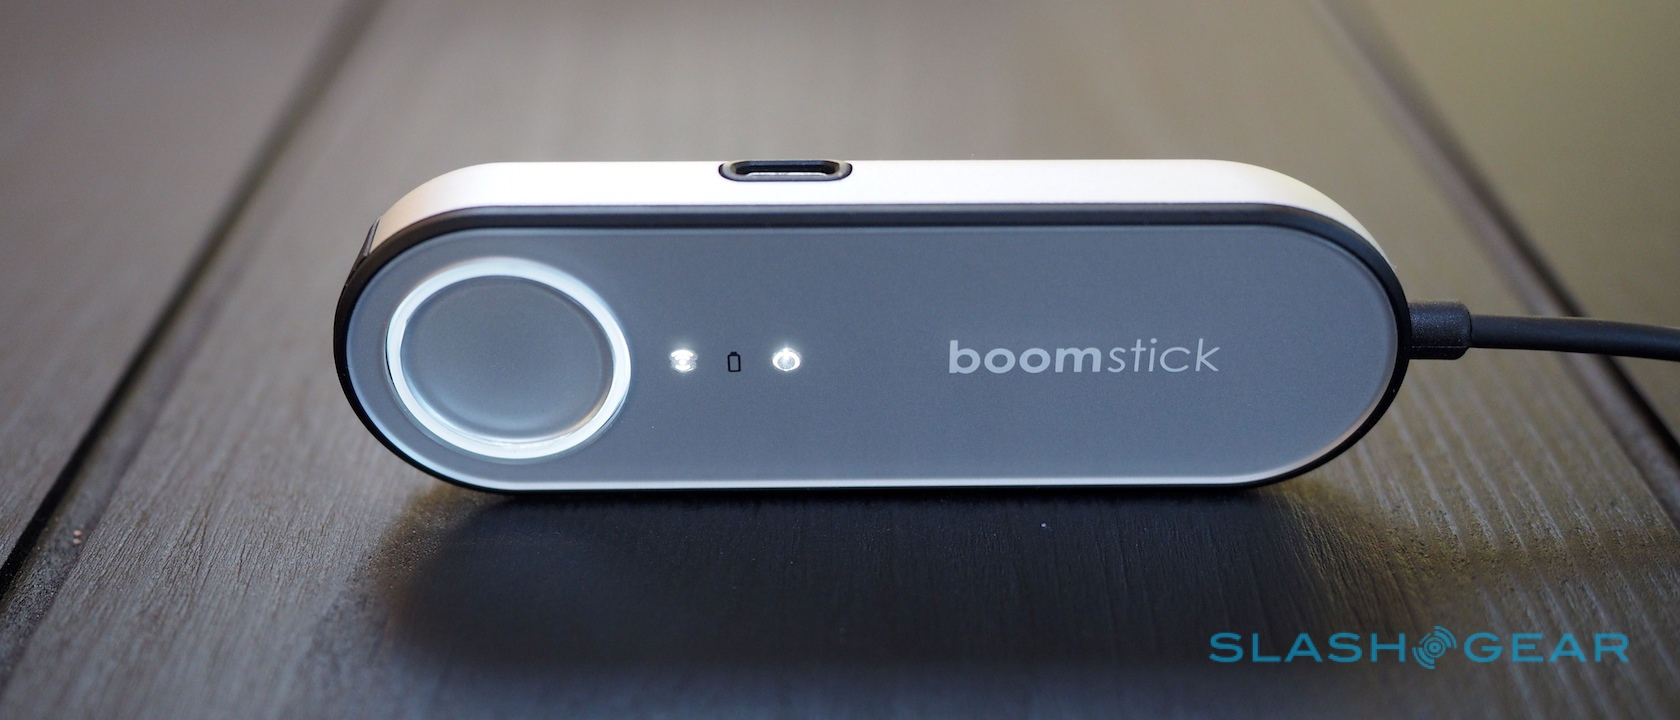 boomstick-review-0